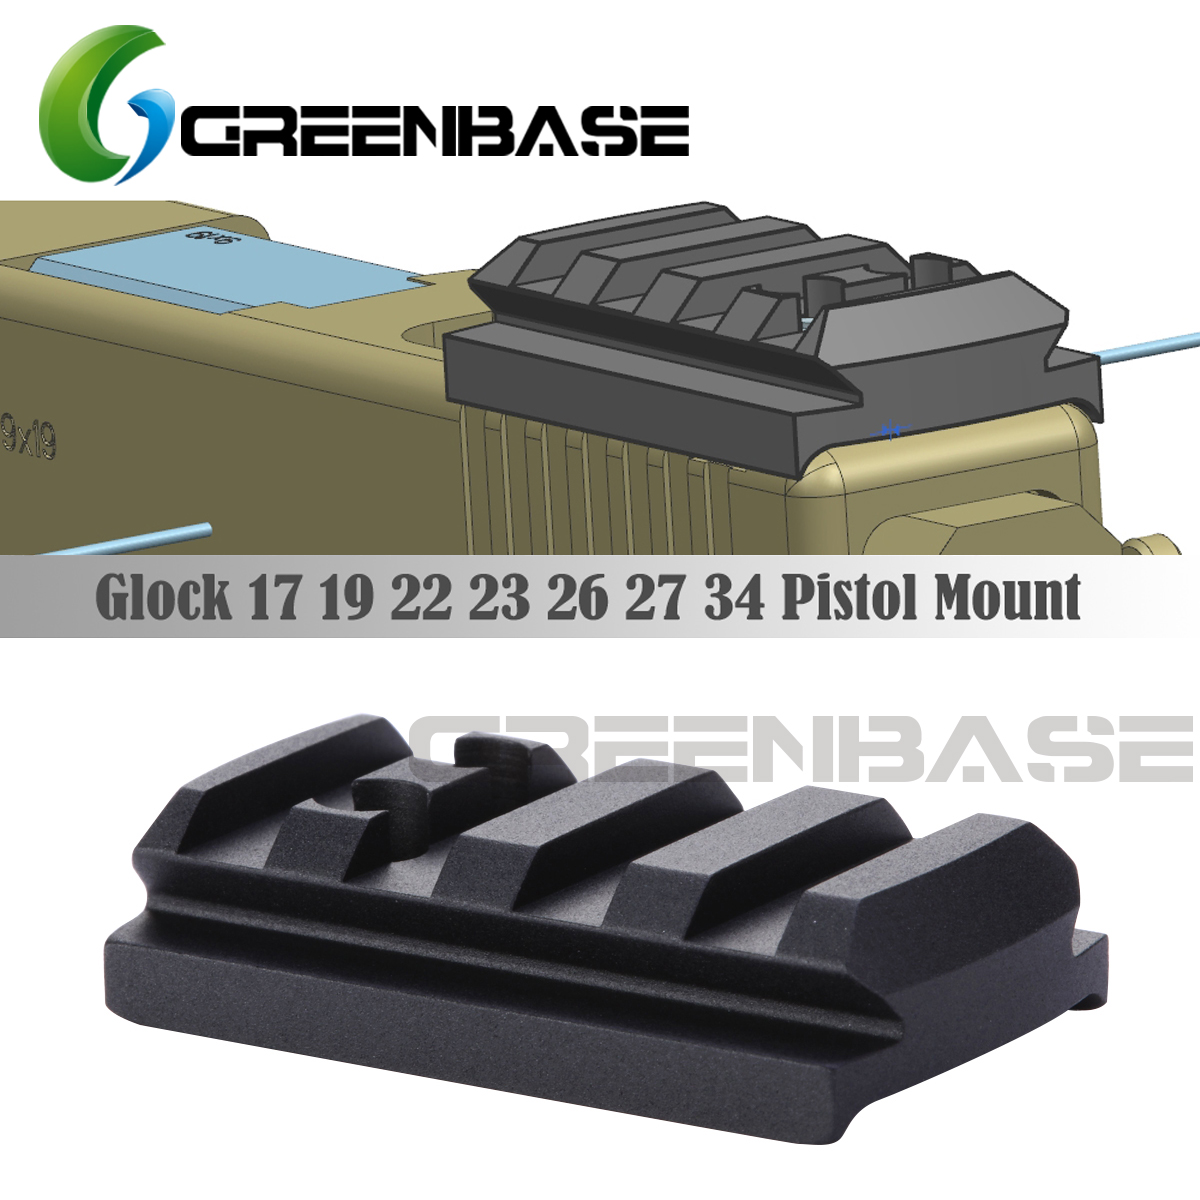 GREENBASE Glock Sight Mount Plate Glock 17 19 22 23 26 27 34 Rail Install For Pistol Red Dot Sight With 20mm Picatinny Rail